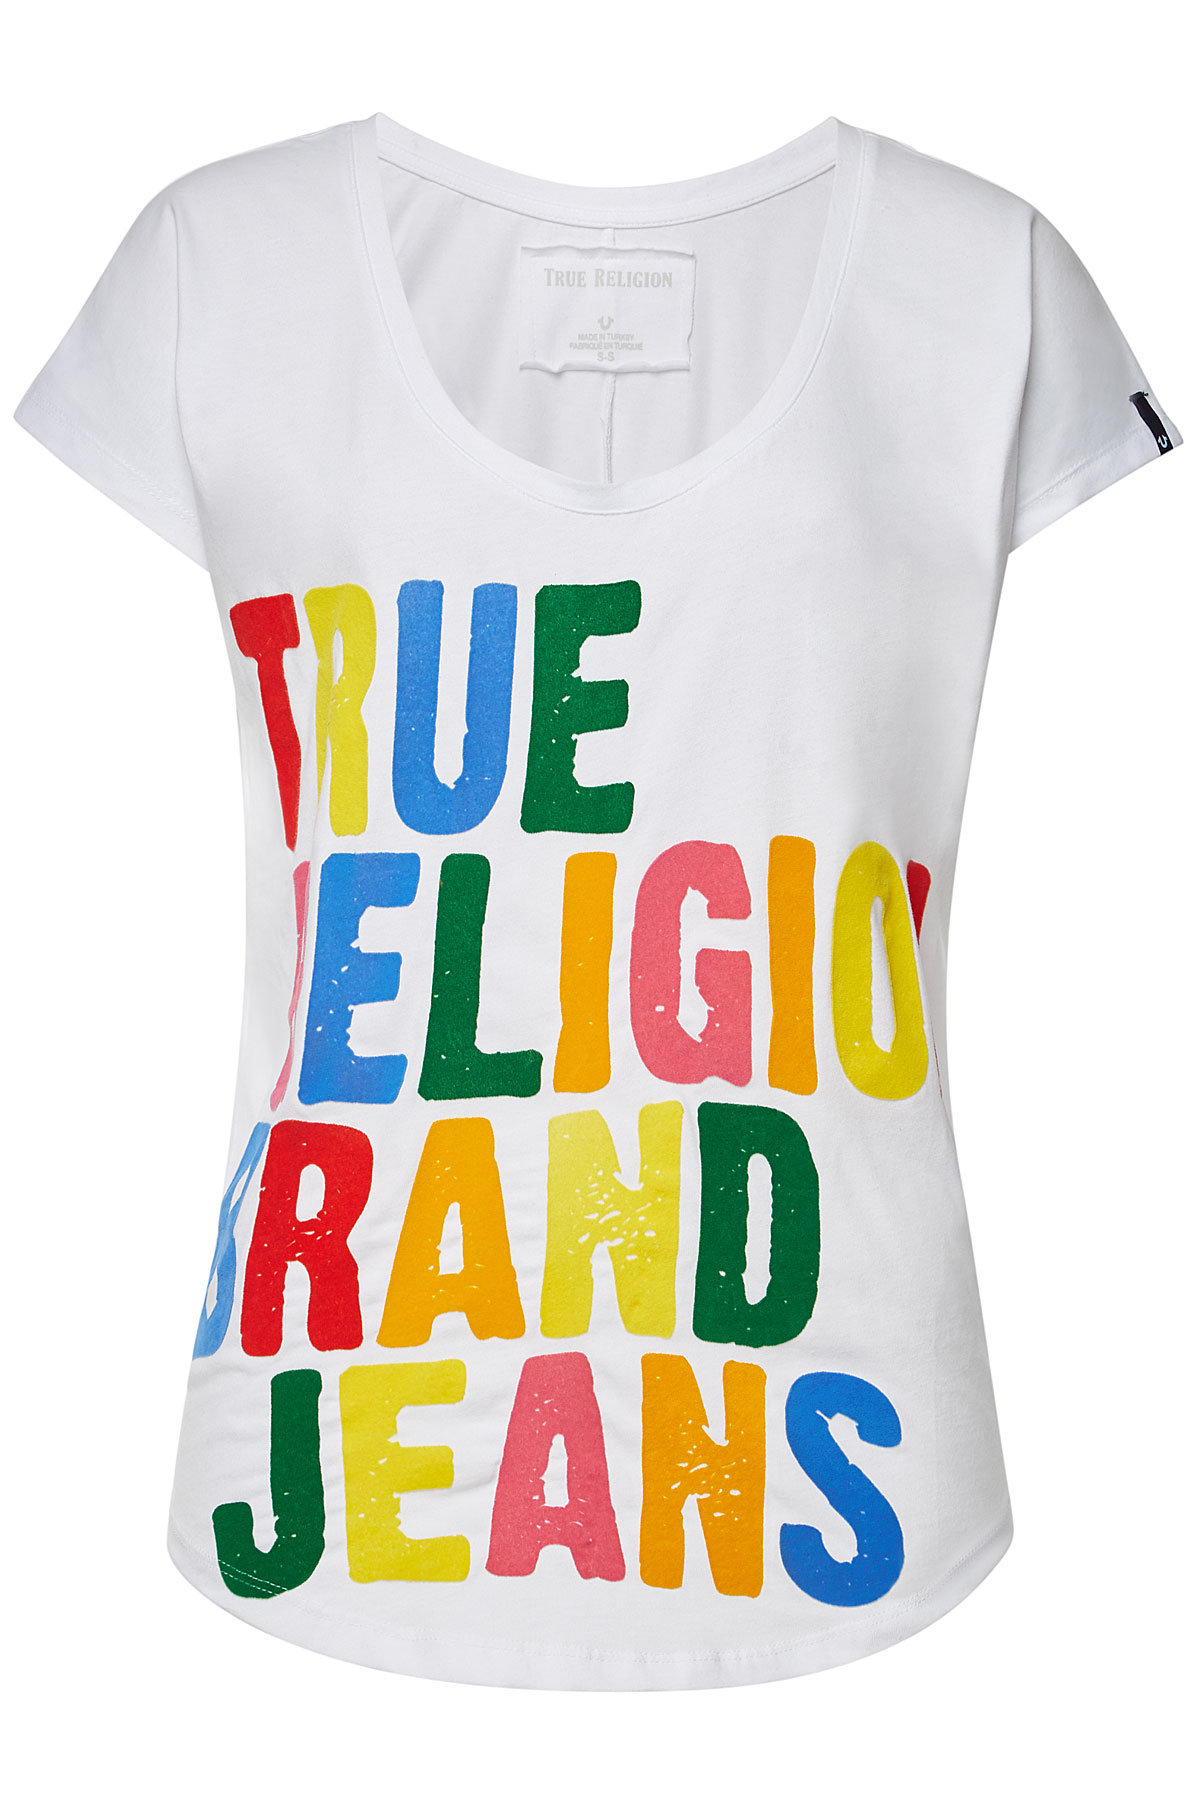 True Religion Cotton Relax Short Sleeve T-shirt In Multicolored